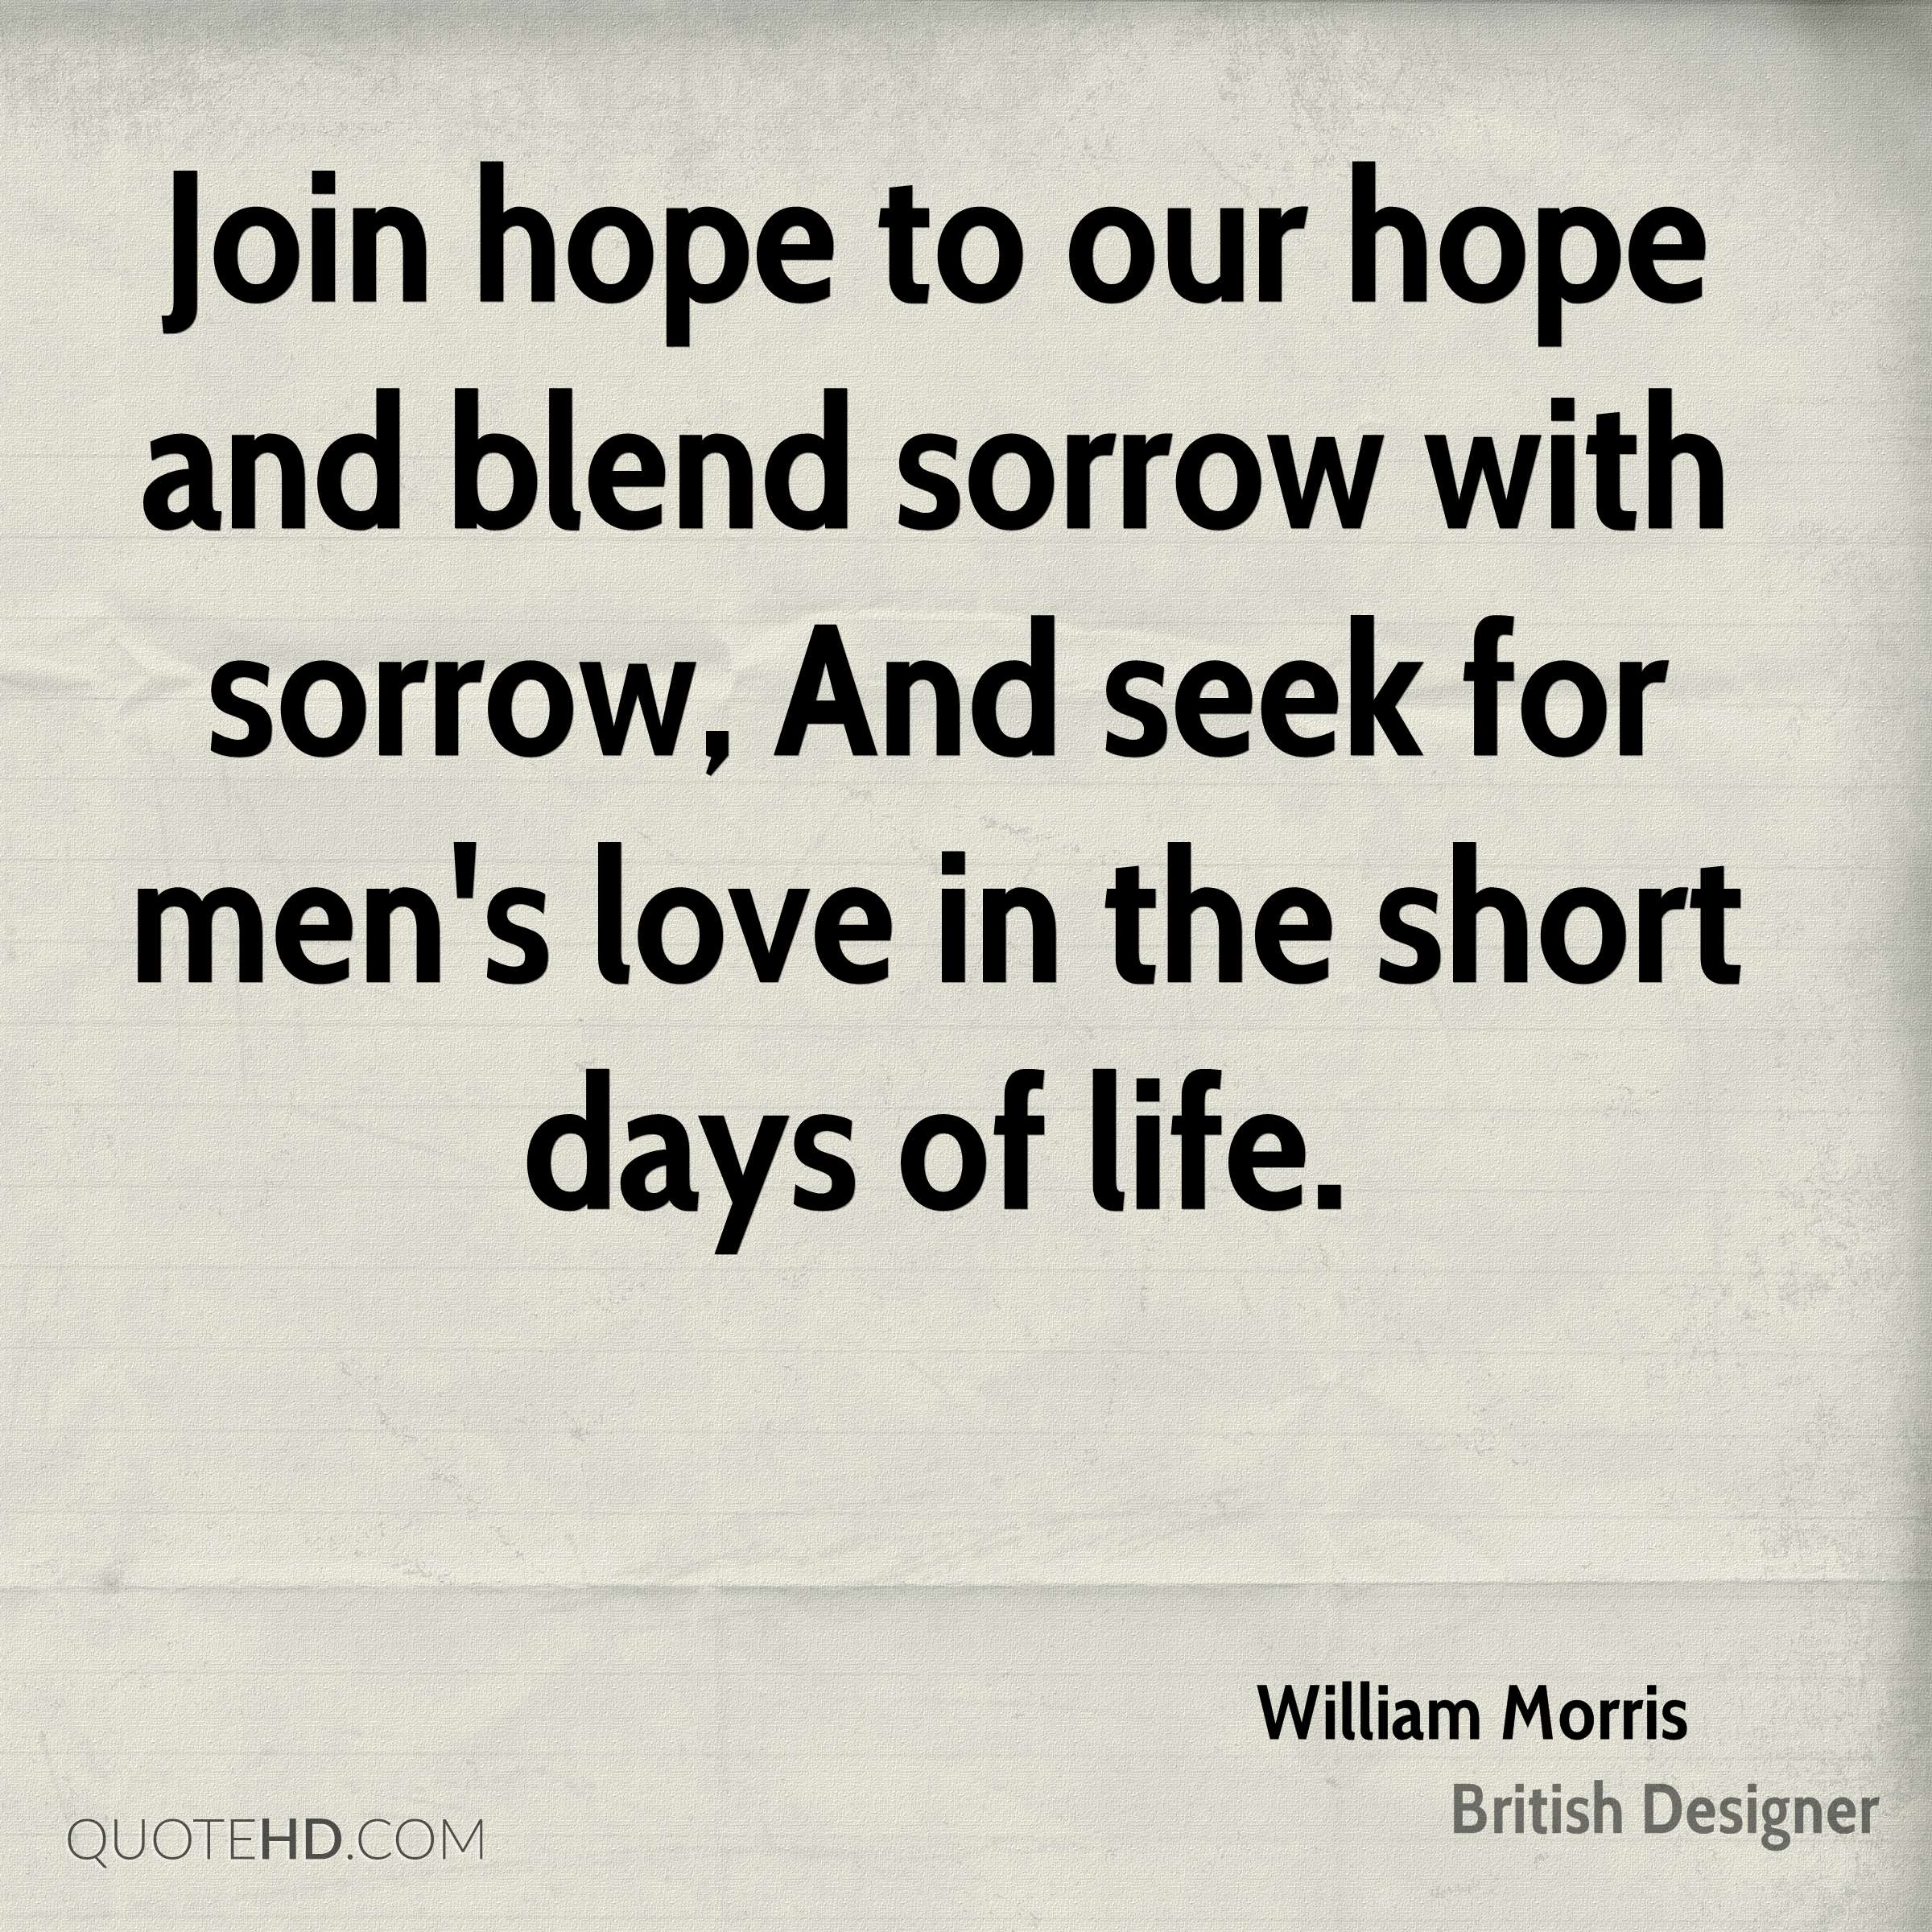 Quotes Hope William Morris Quotes  Quotehd